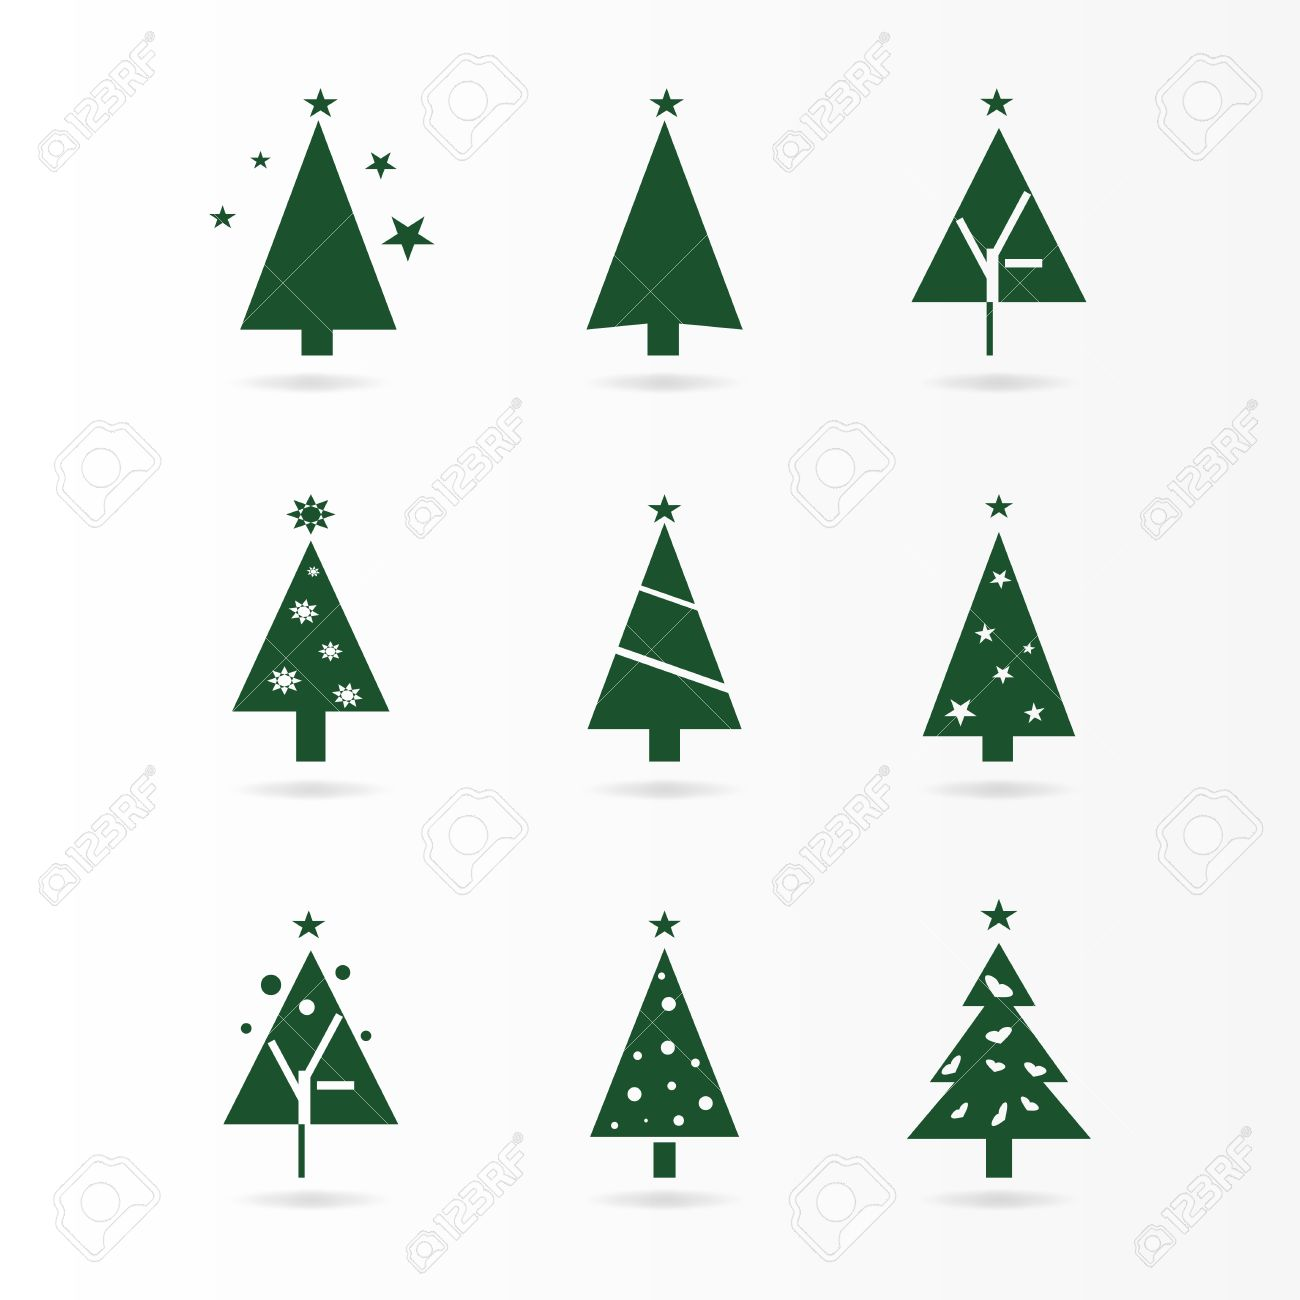 Design Weihnachtsbaum.Stock Photo